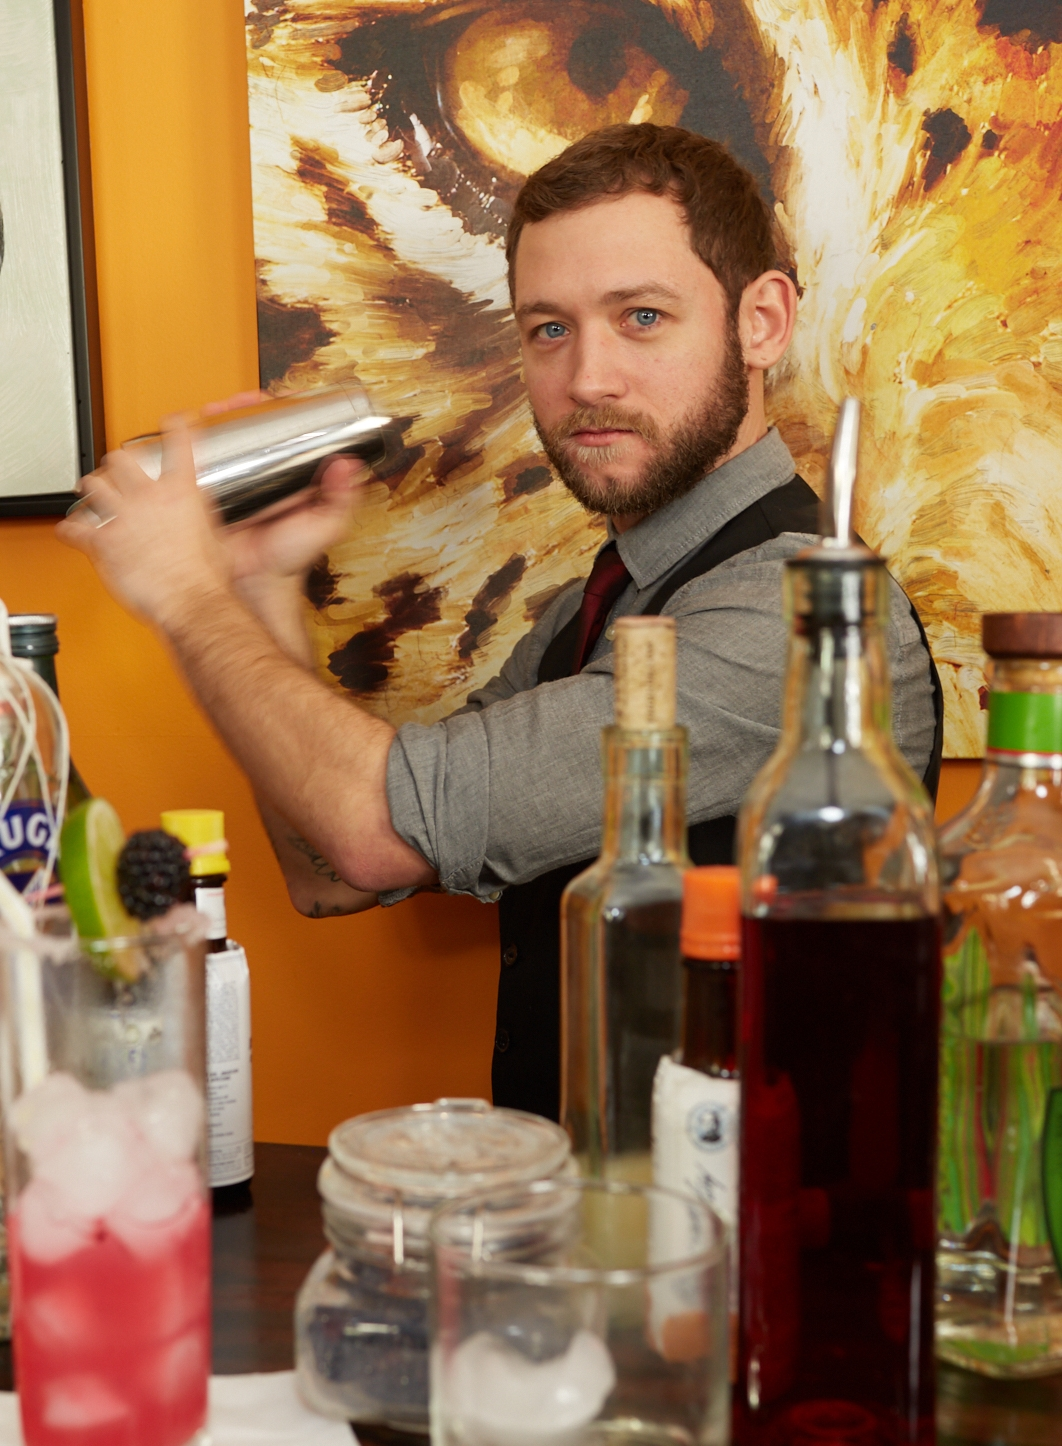 Kenny Barnes Co-Owner - Starting his mixology career at the age of 13, when his grandfather showed him how to make the perfect old fashioned, Kenny had an early lesson in hosting. You are equally likely to see him behind one of our bars, or running around behind the scenes making sure the party is running just right.